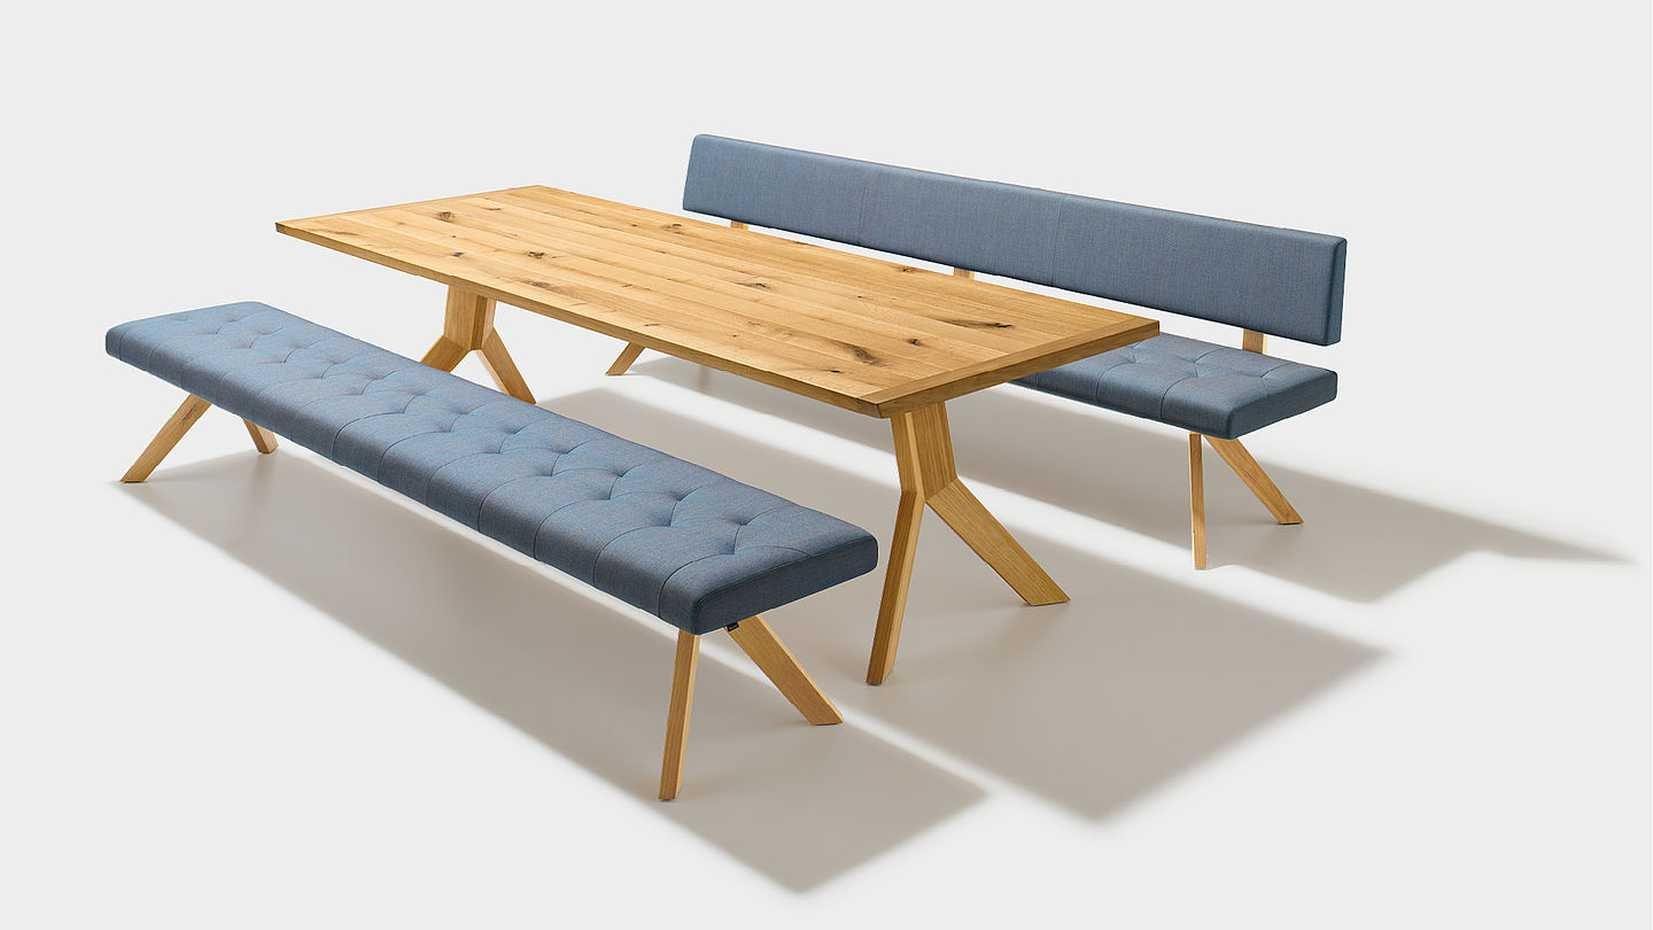 Yps Bench by Team 7 product image 4